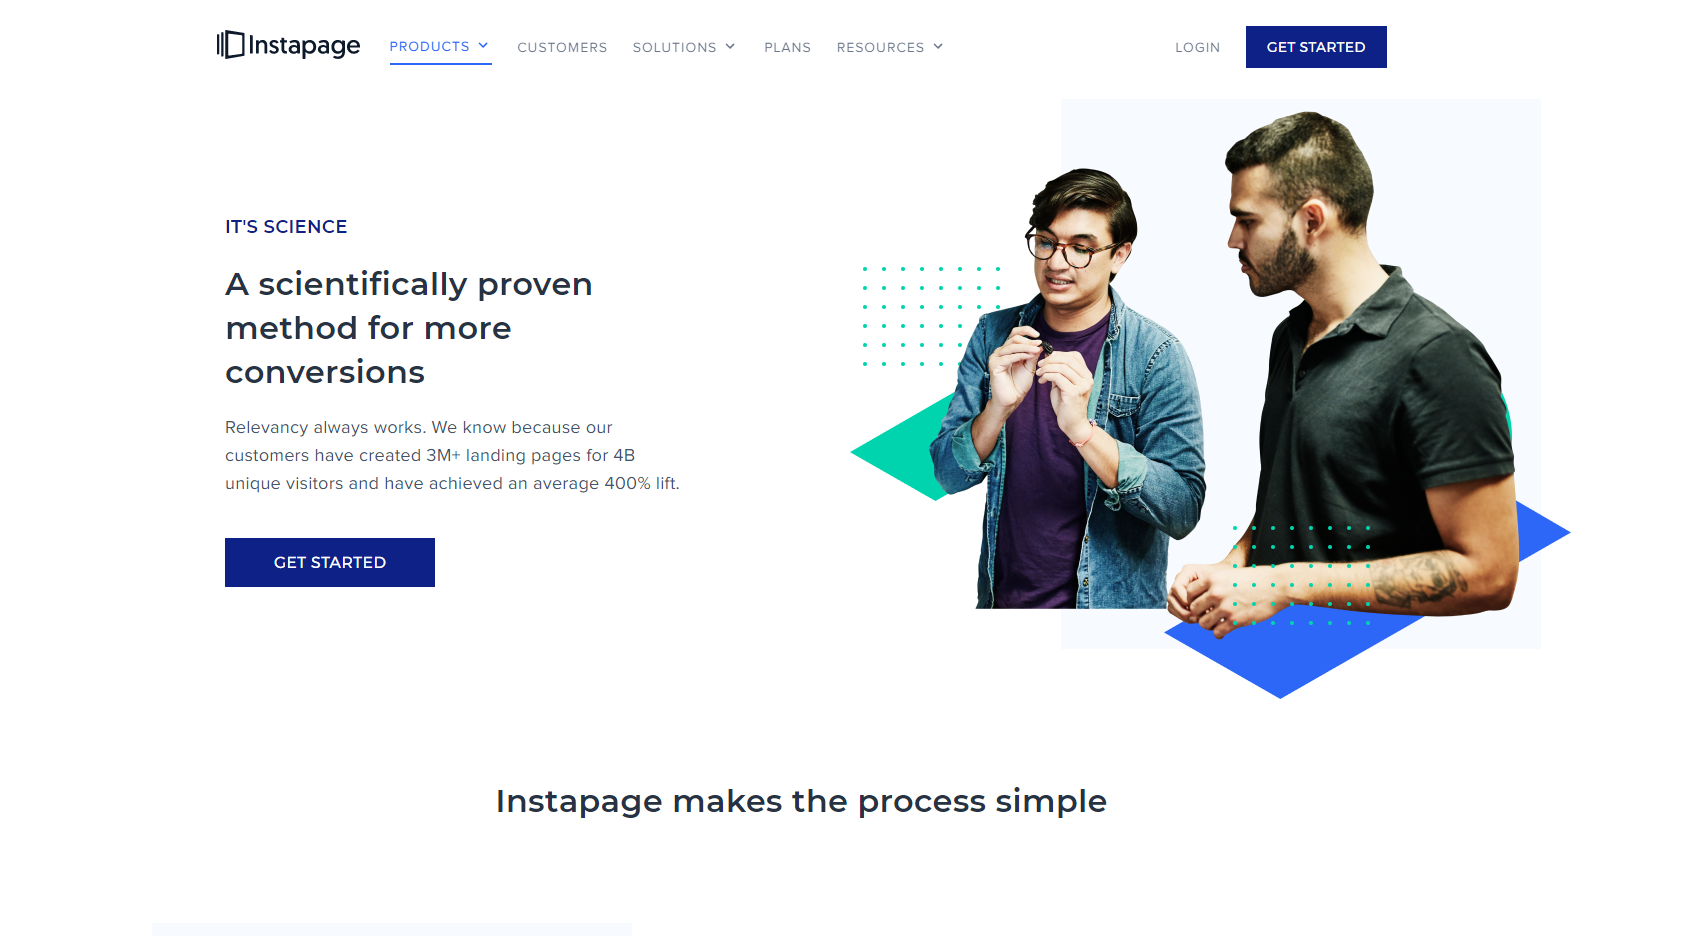 Instapage Products